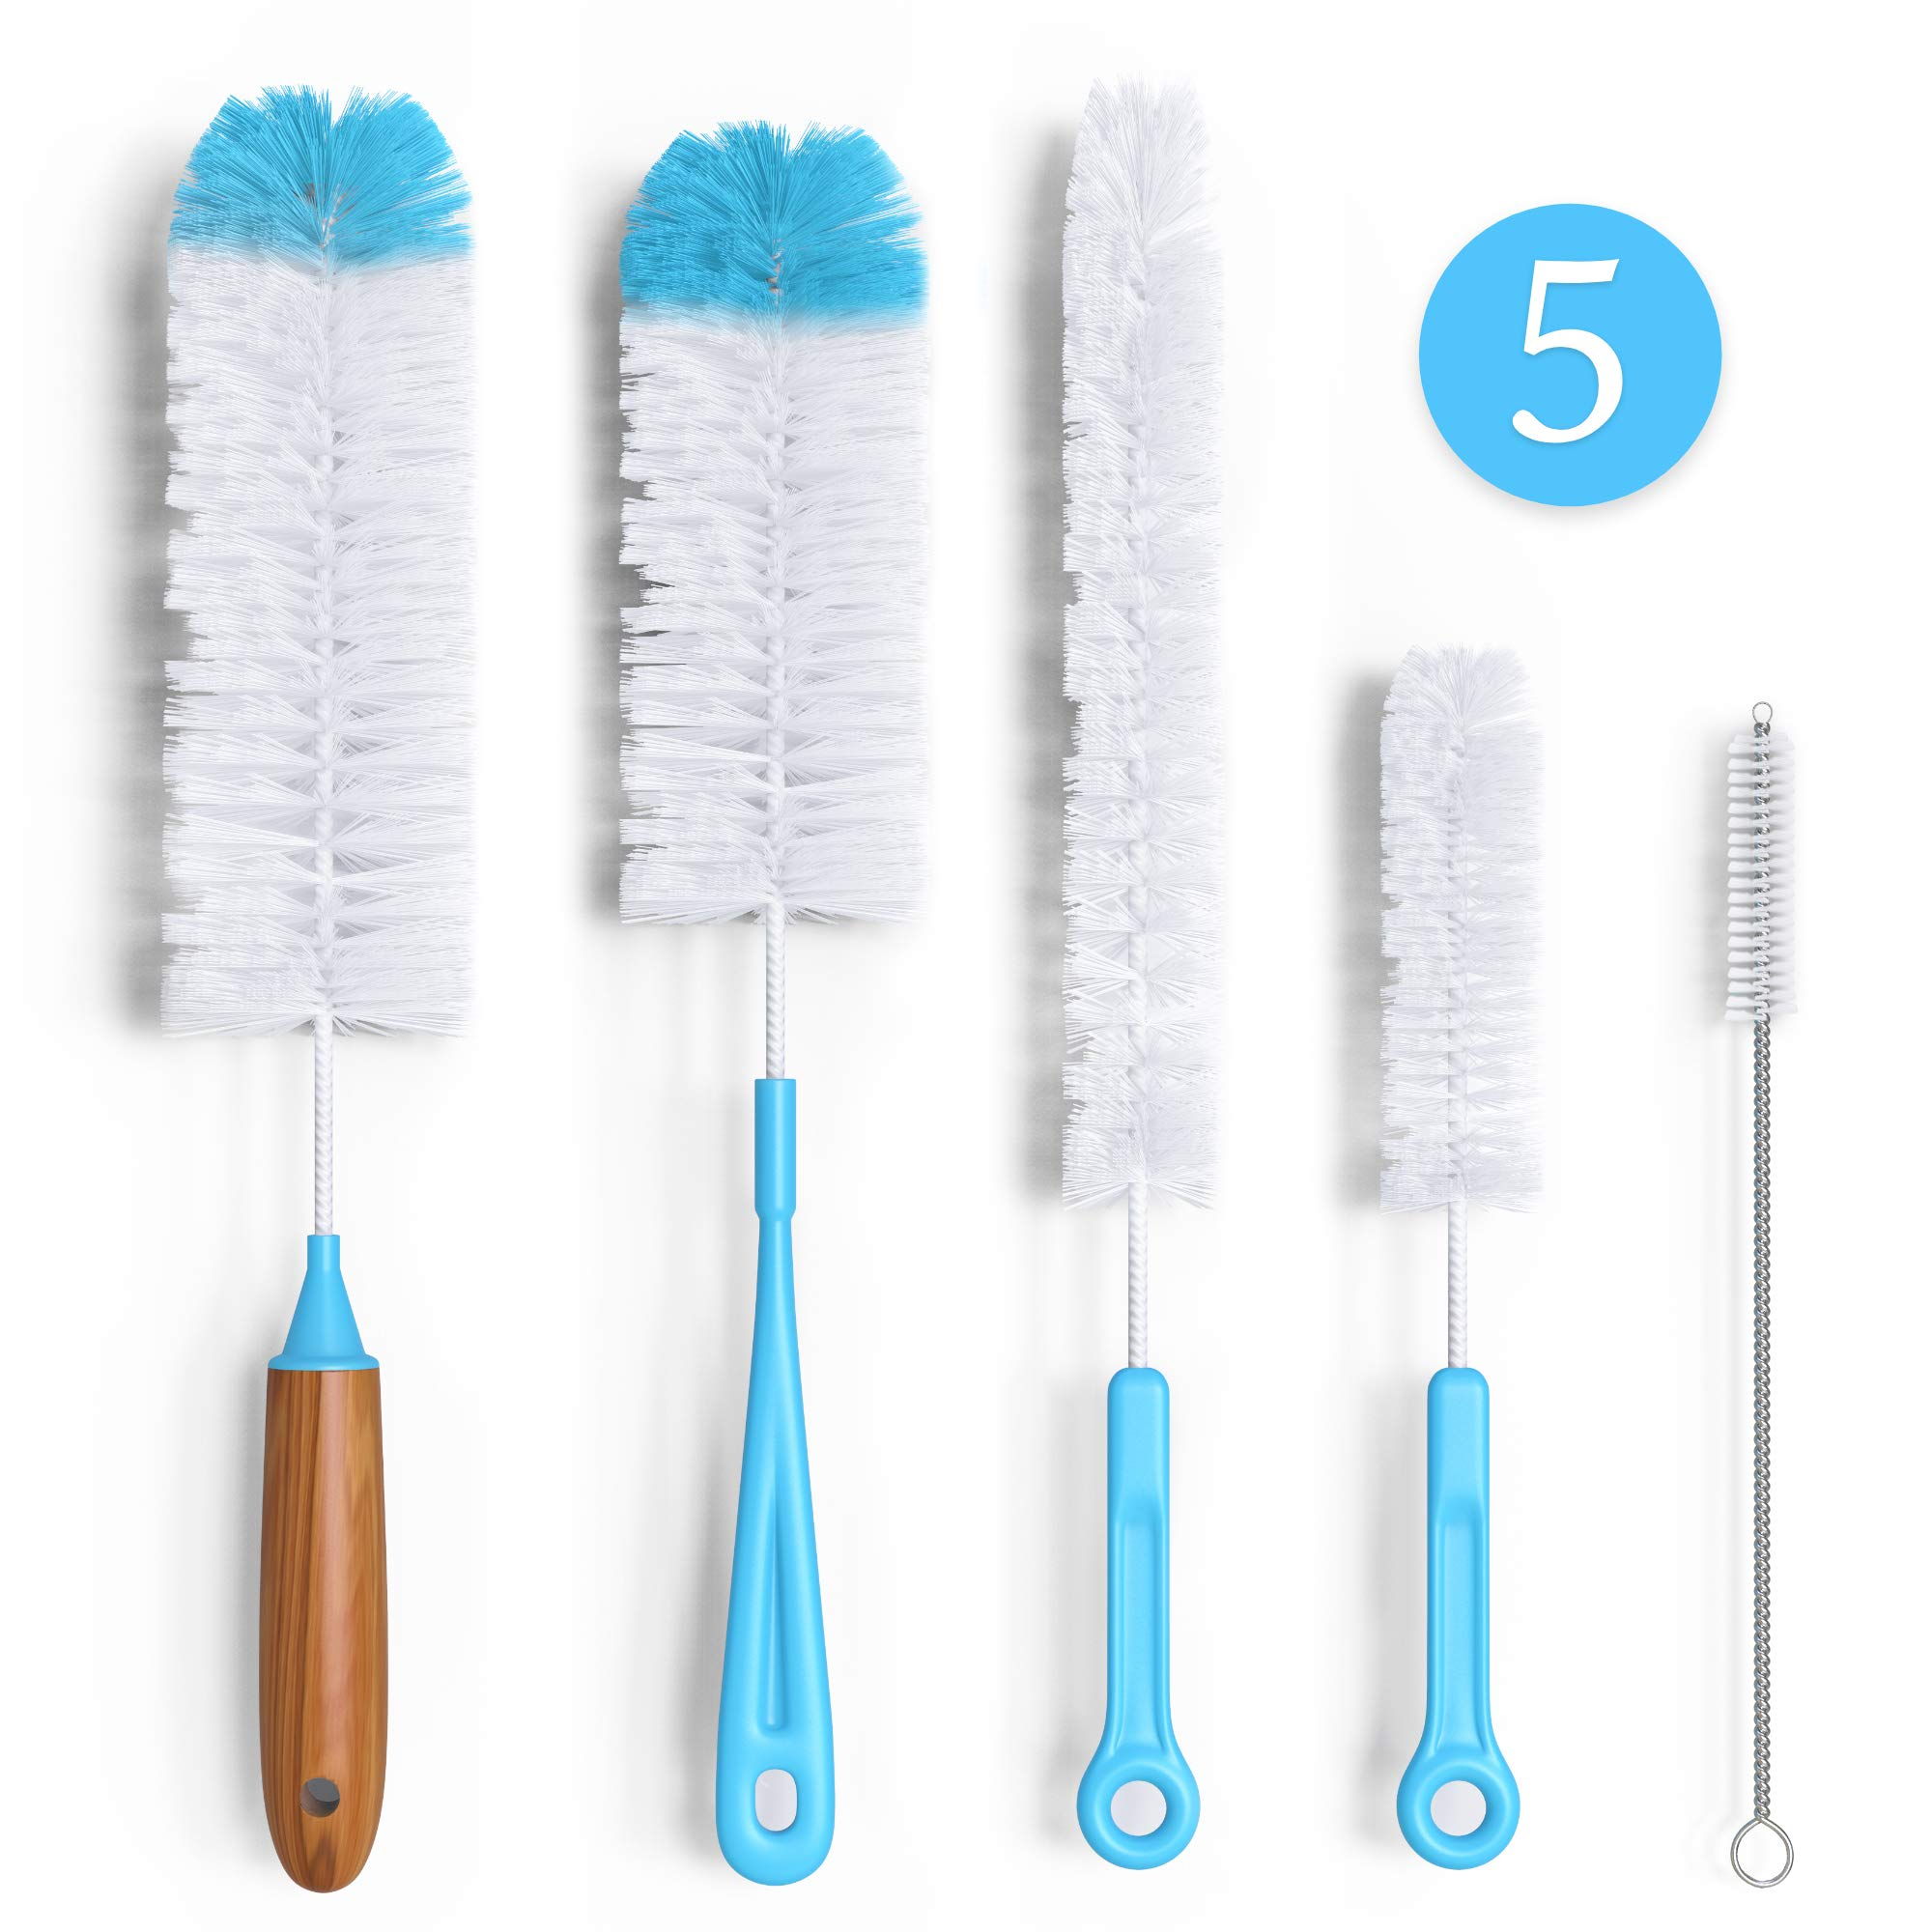 Bottle Brush Cleaner 5 Pack - Long Water Bottle and Straw Cleaning Brush - Kitchen Wire Scrub Set for Washing, Wine Decanter, Baby, Kombucha, Pipes, Hydro Flask Tumbler, Sinks, Beer Brewing Supplies by BluBox